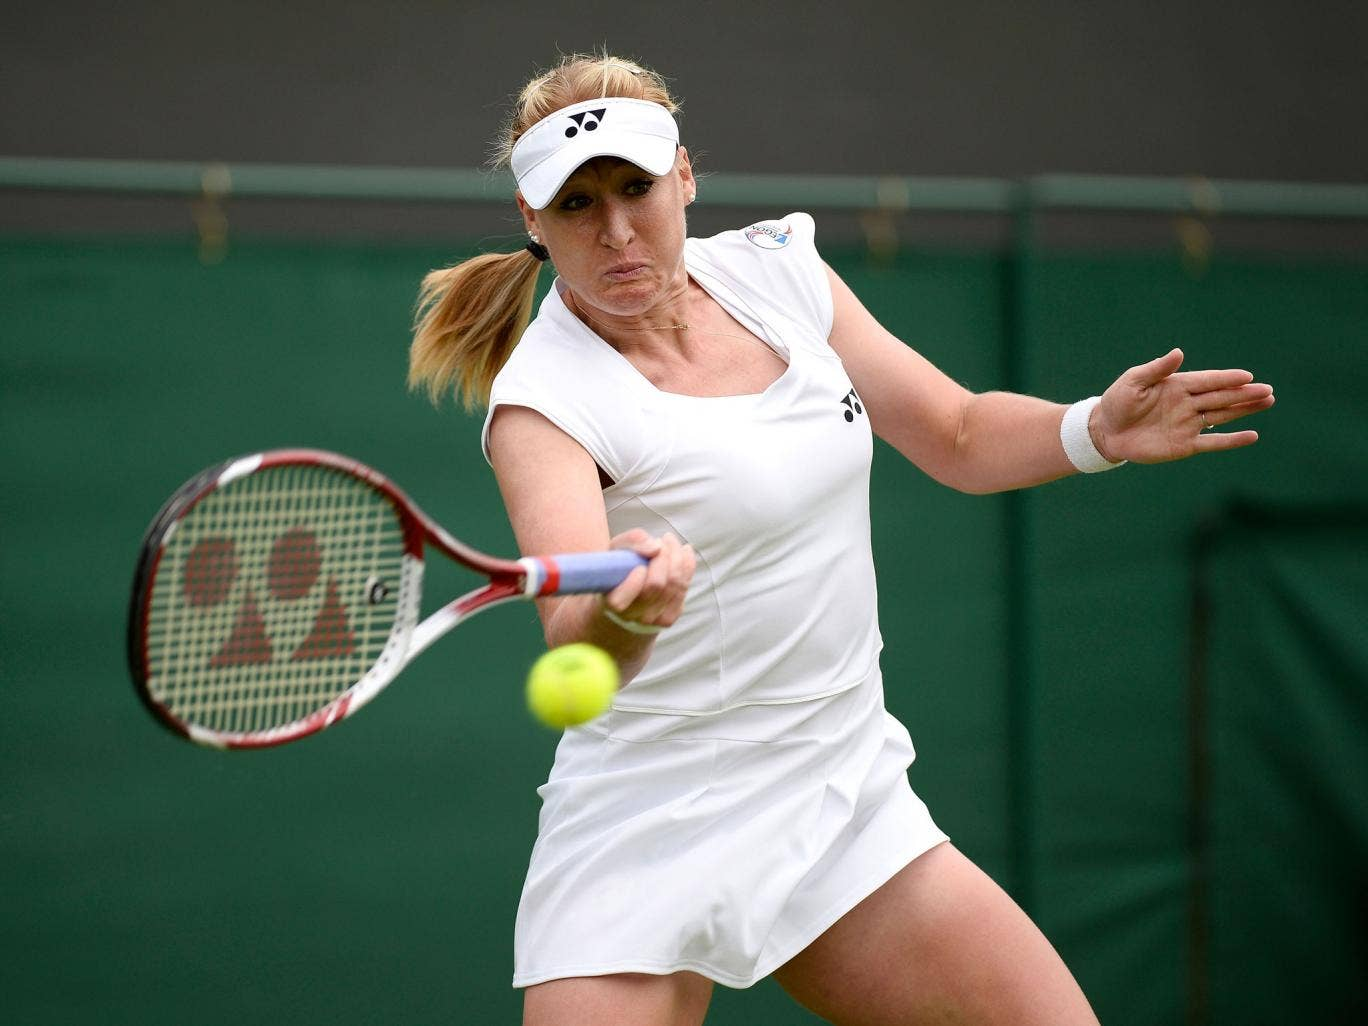 Elena Baltacha, who runs a tennis academy in Ipswich, already had a chronic liver condition